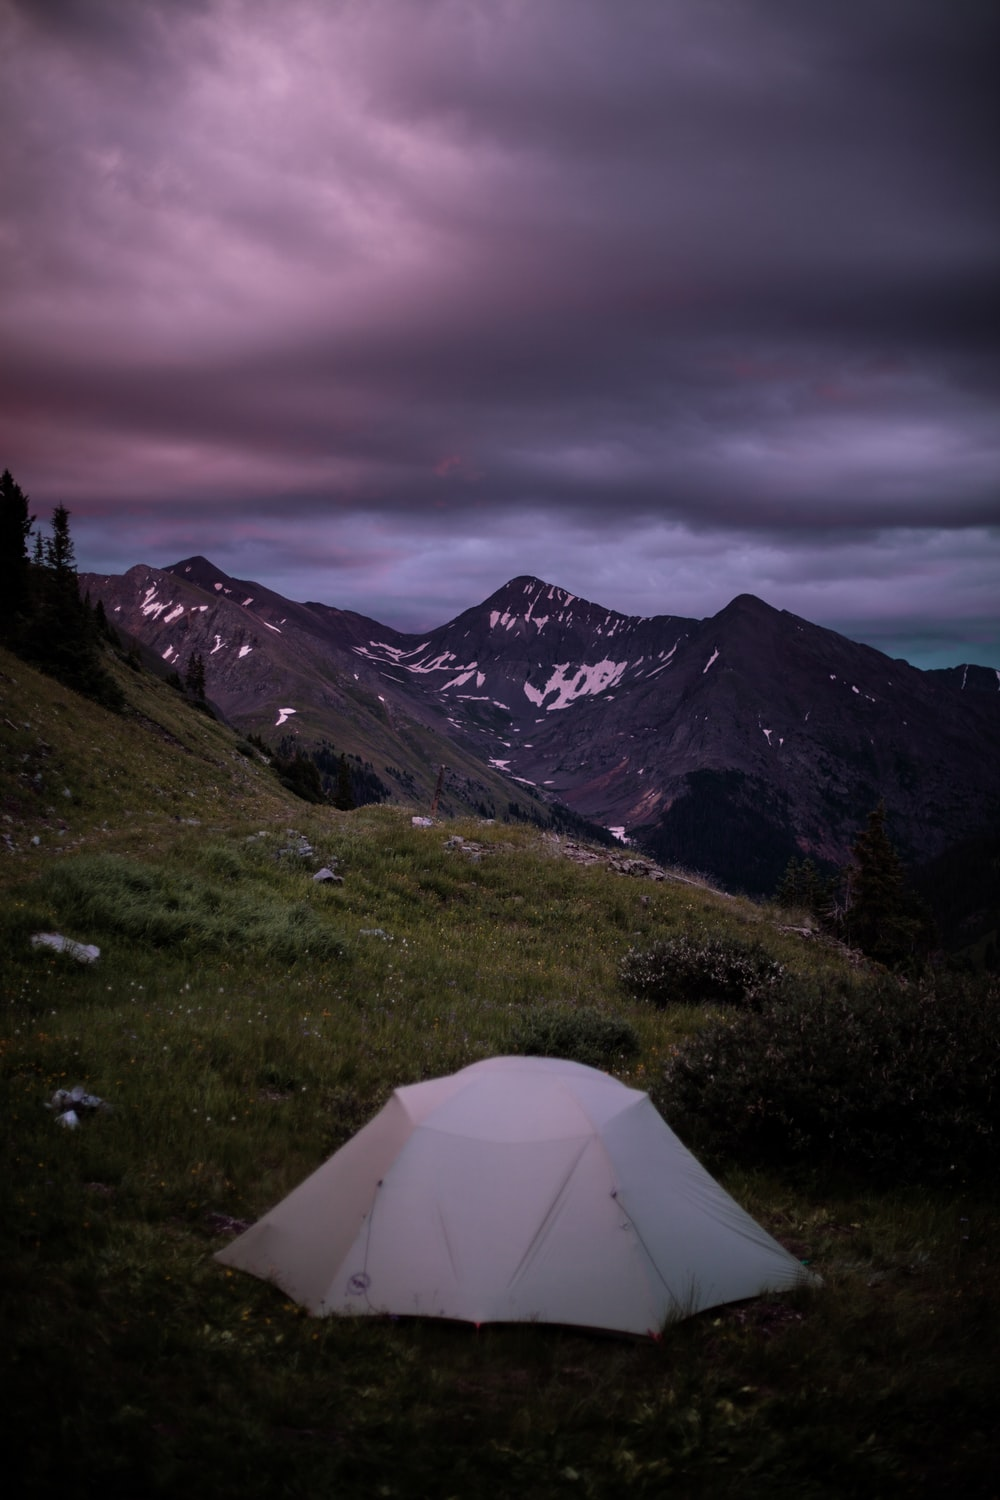 white cabin tent in the mountain